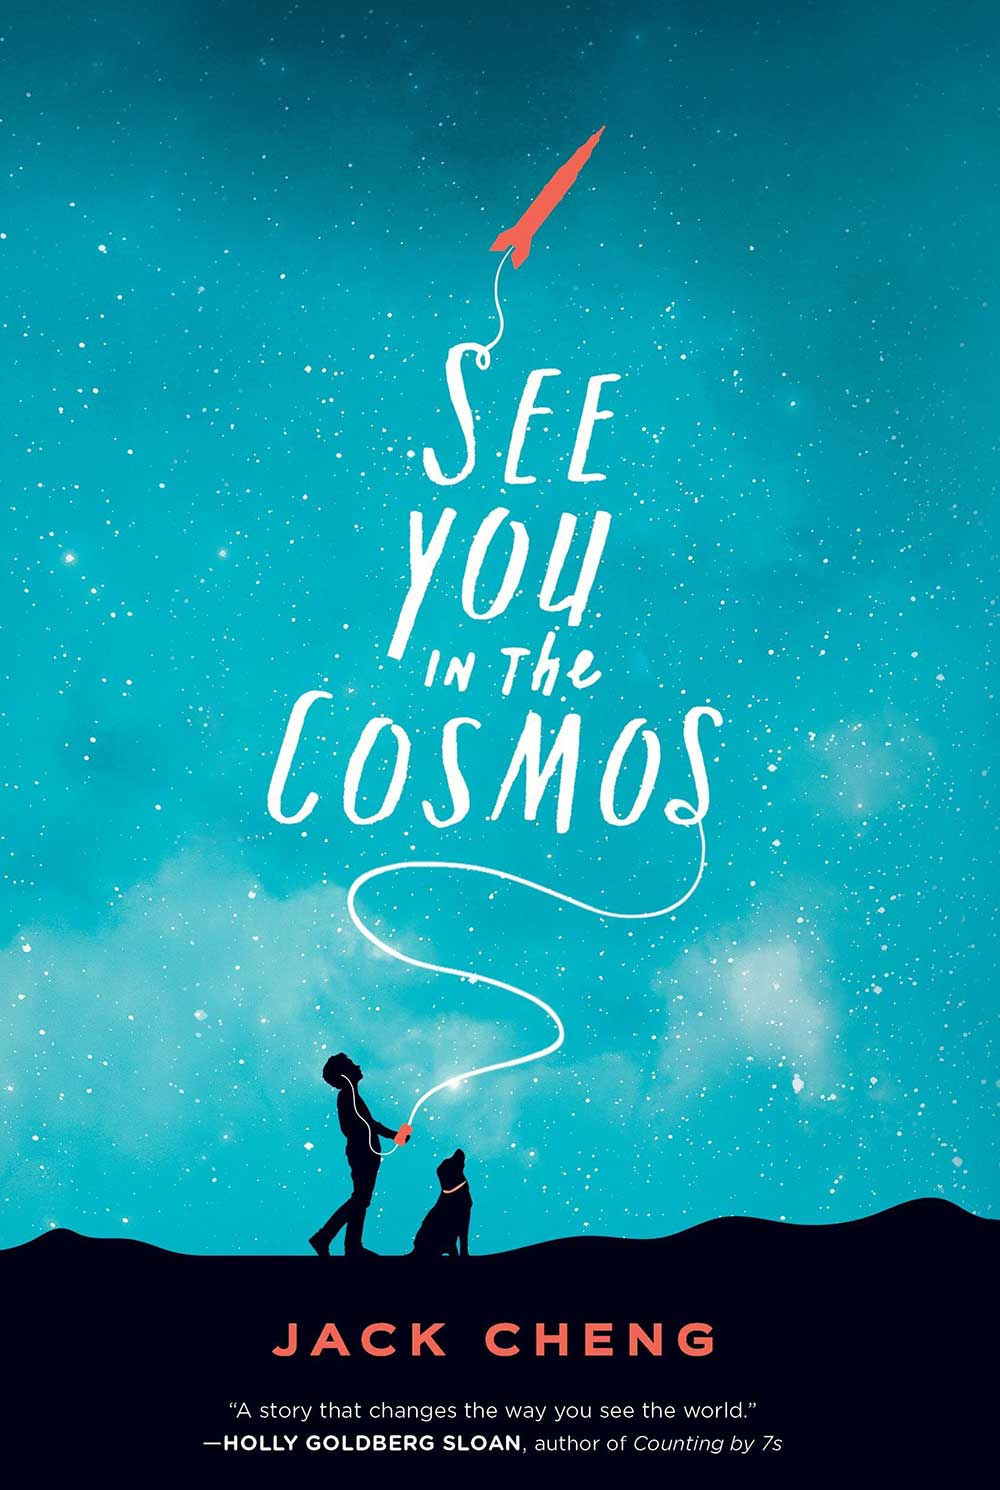 13-See-You-in-the-Cosmos